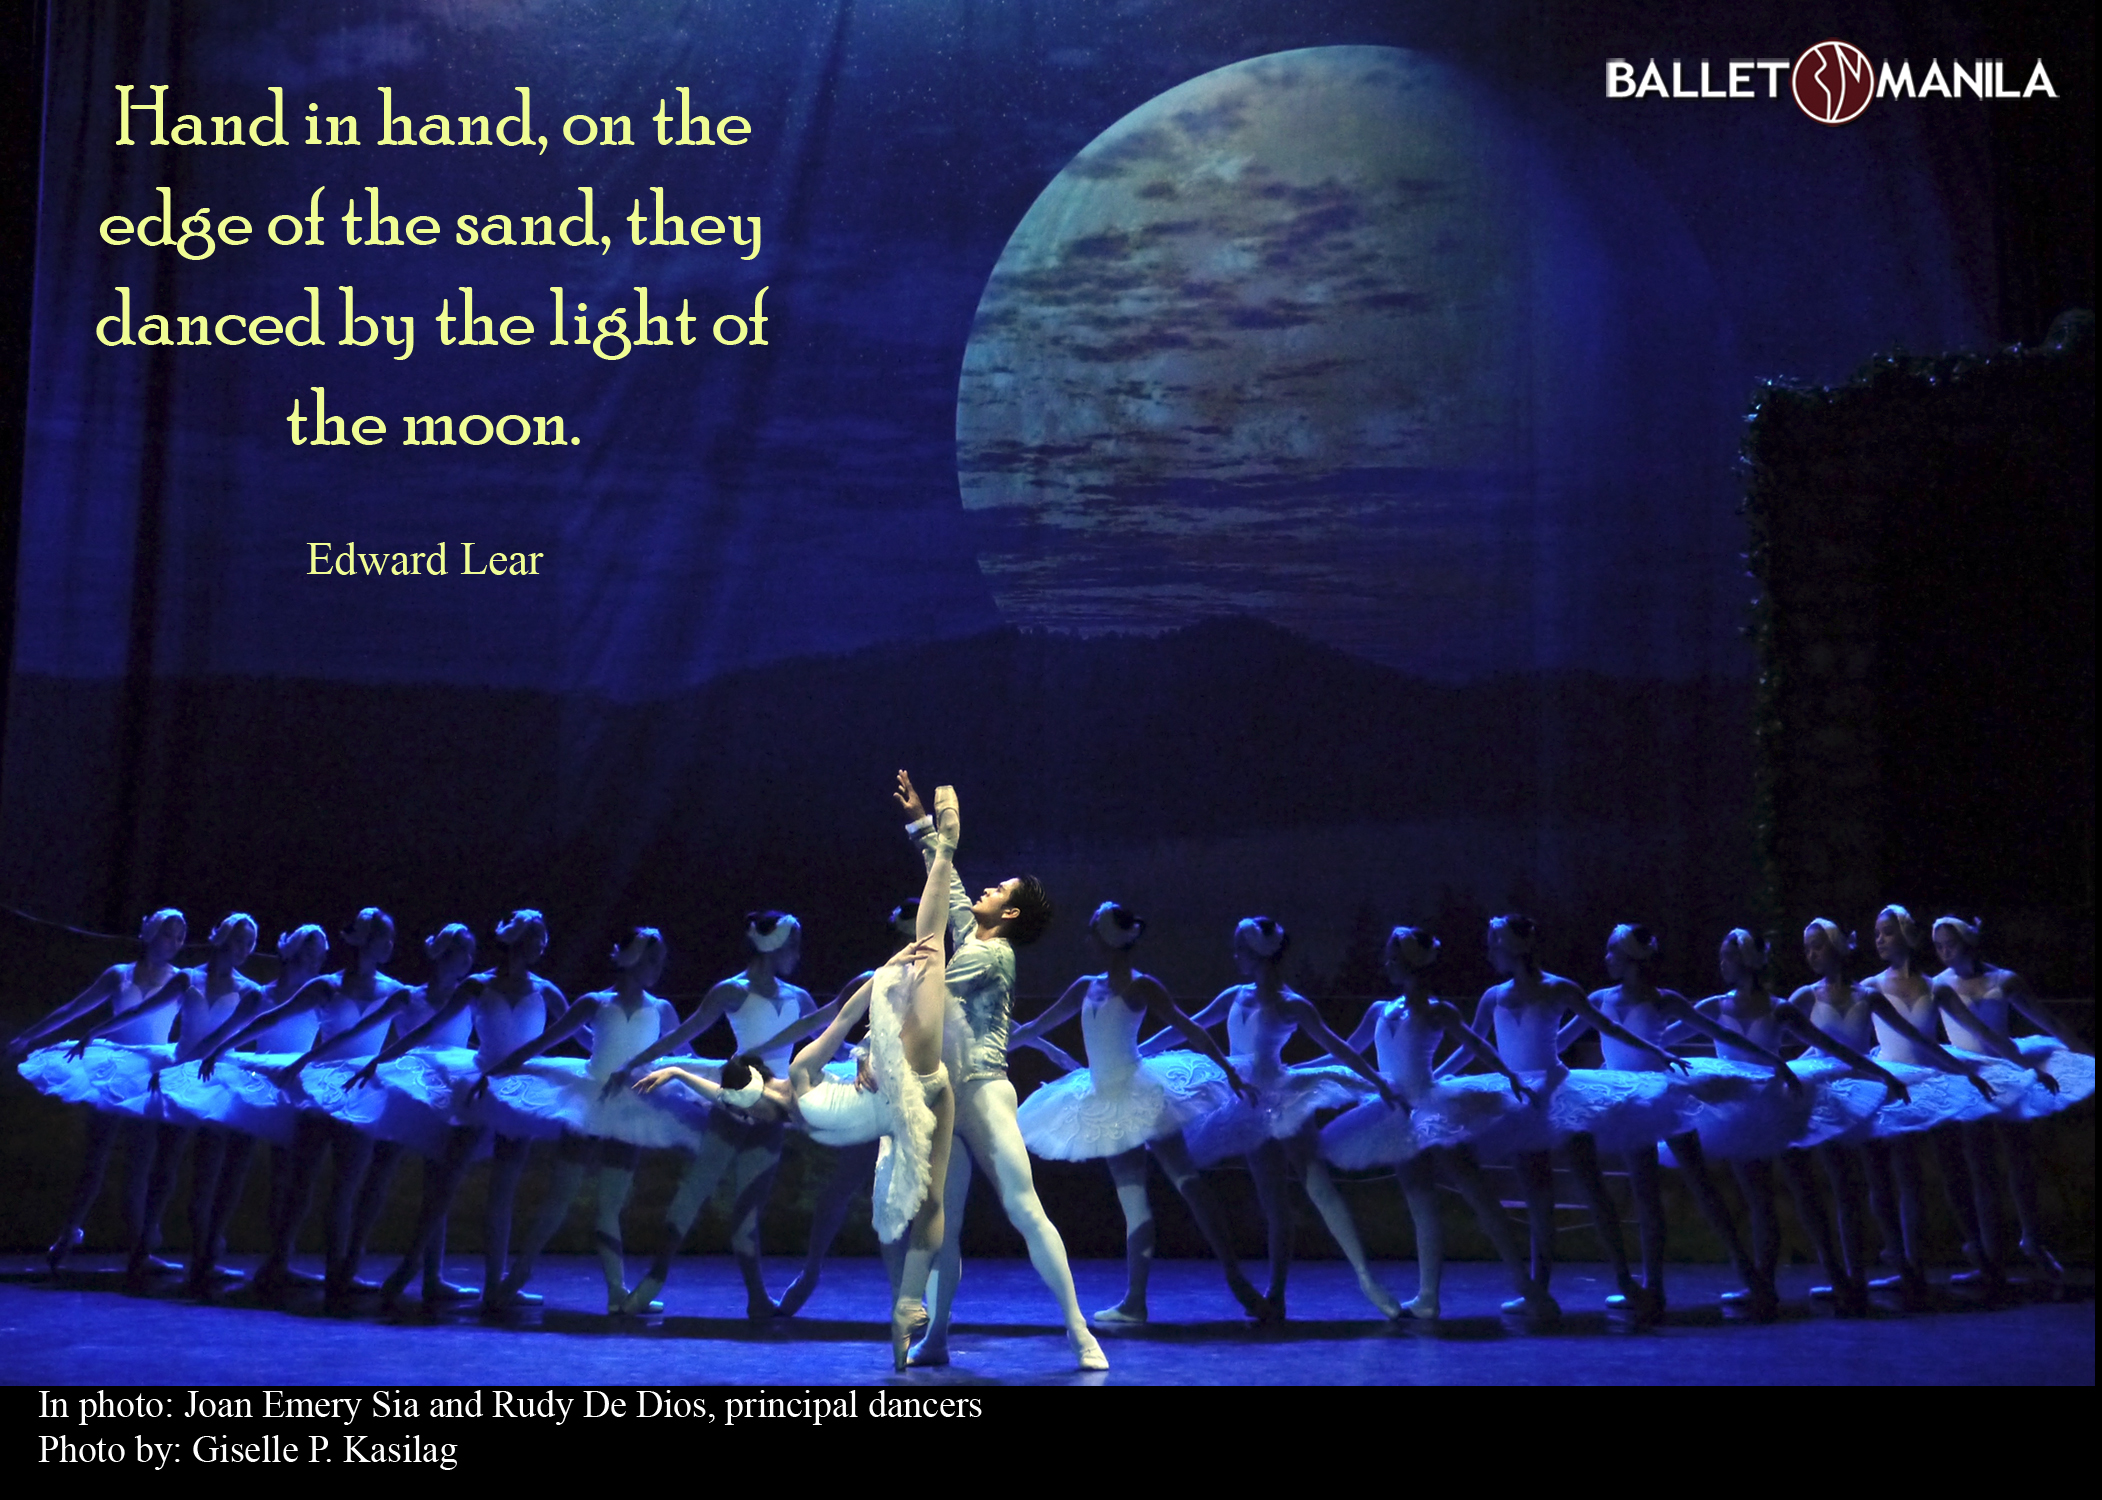 Talk about dance: Edward Lear - Ballet Manila Archives